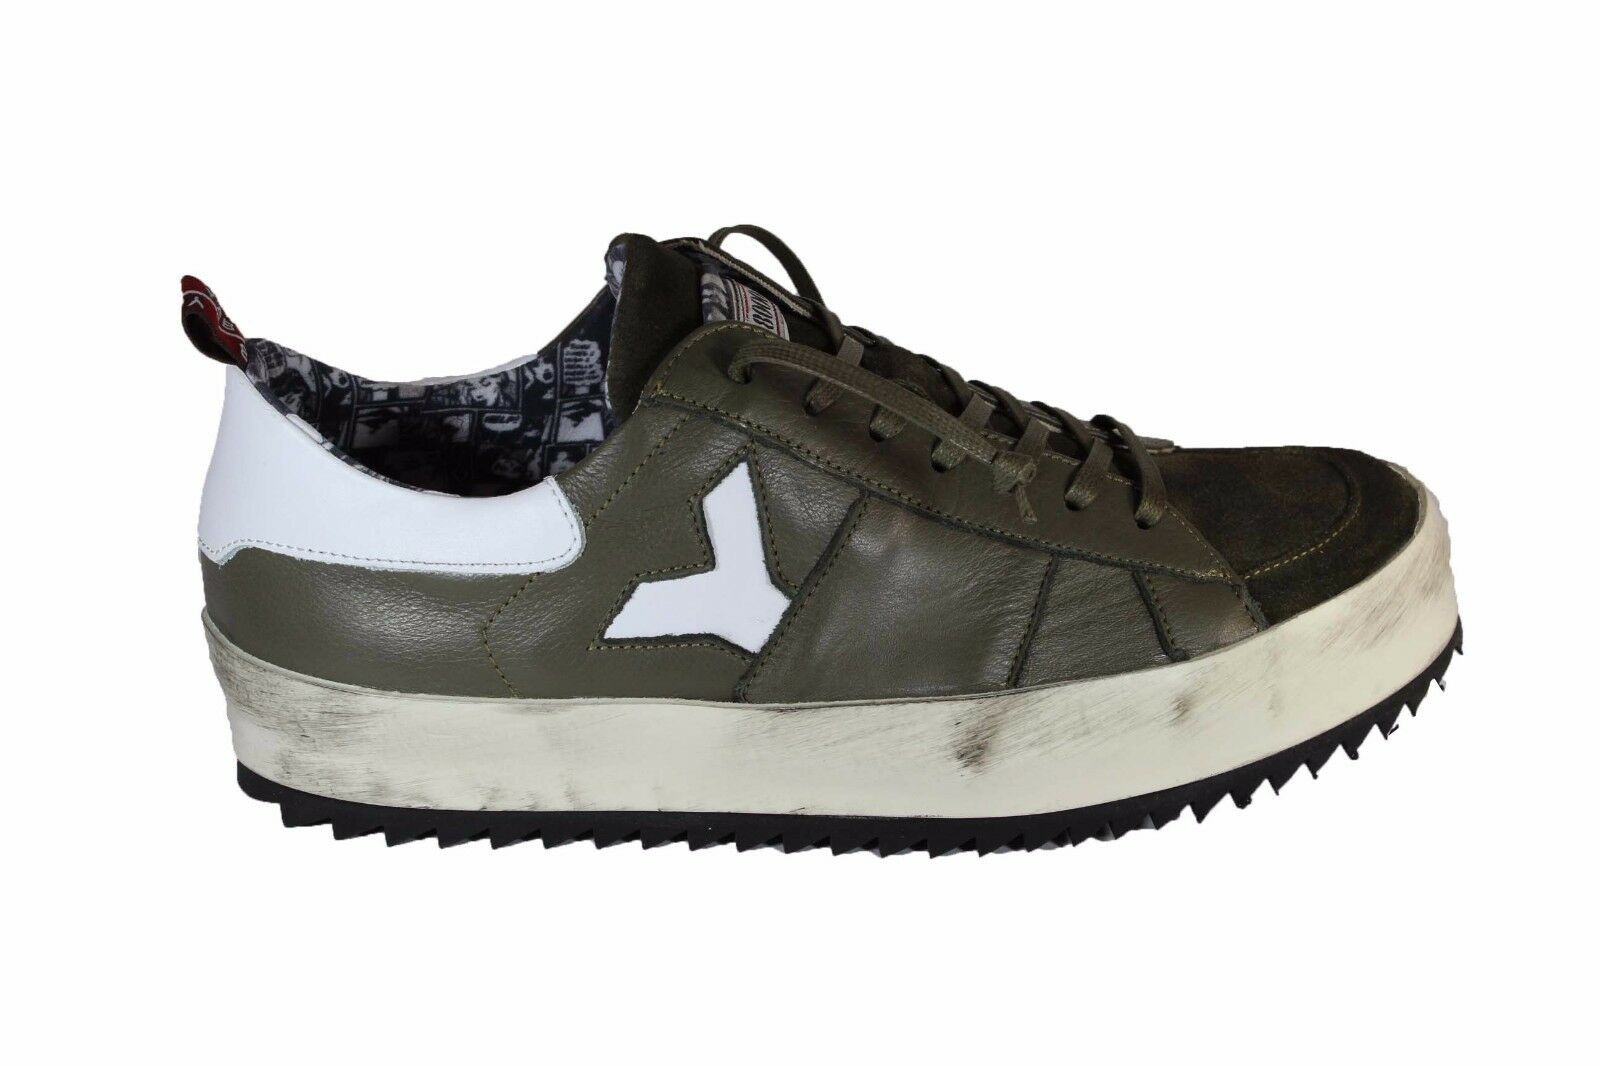 YAB green verde leather sneakers F/W 2017 sneakers in pelle verde green militare A/I 2017 3b71d4